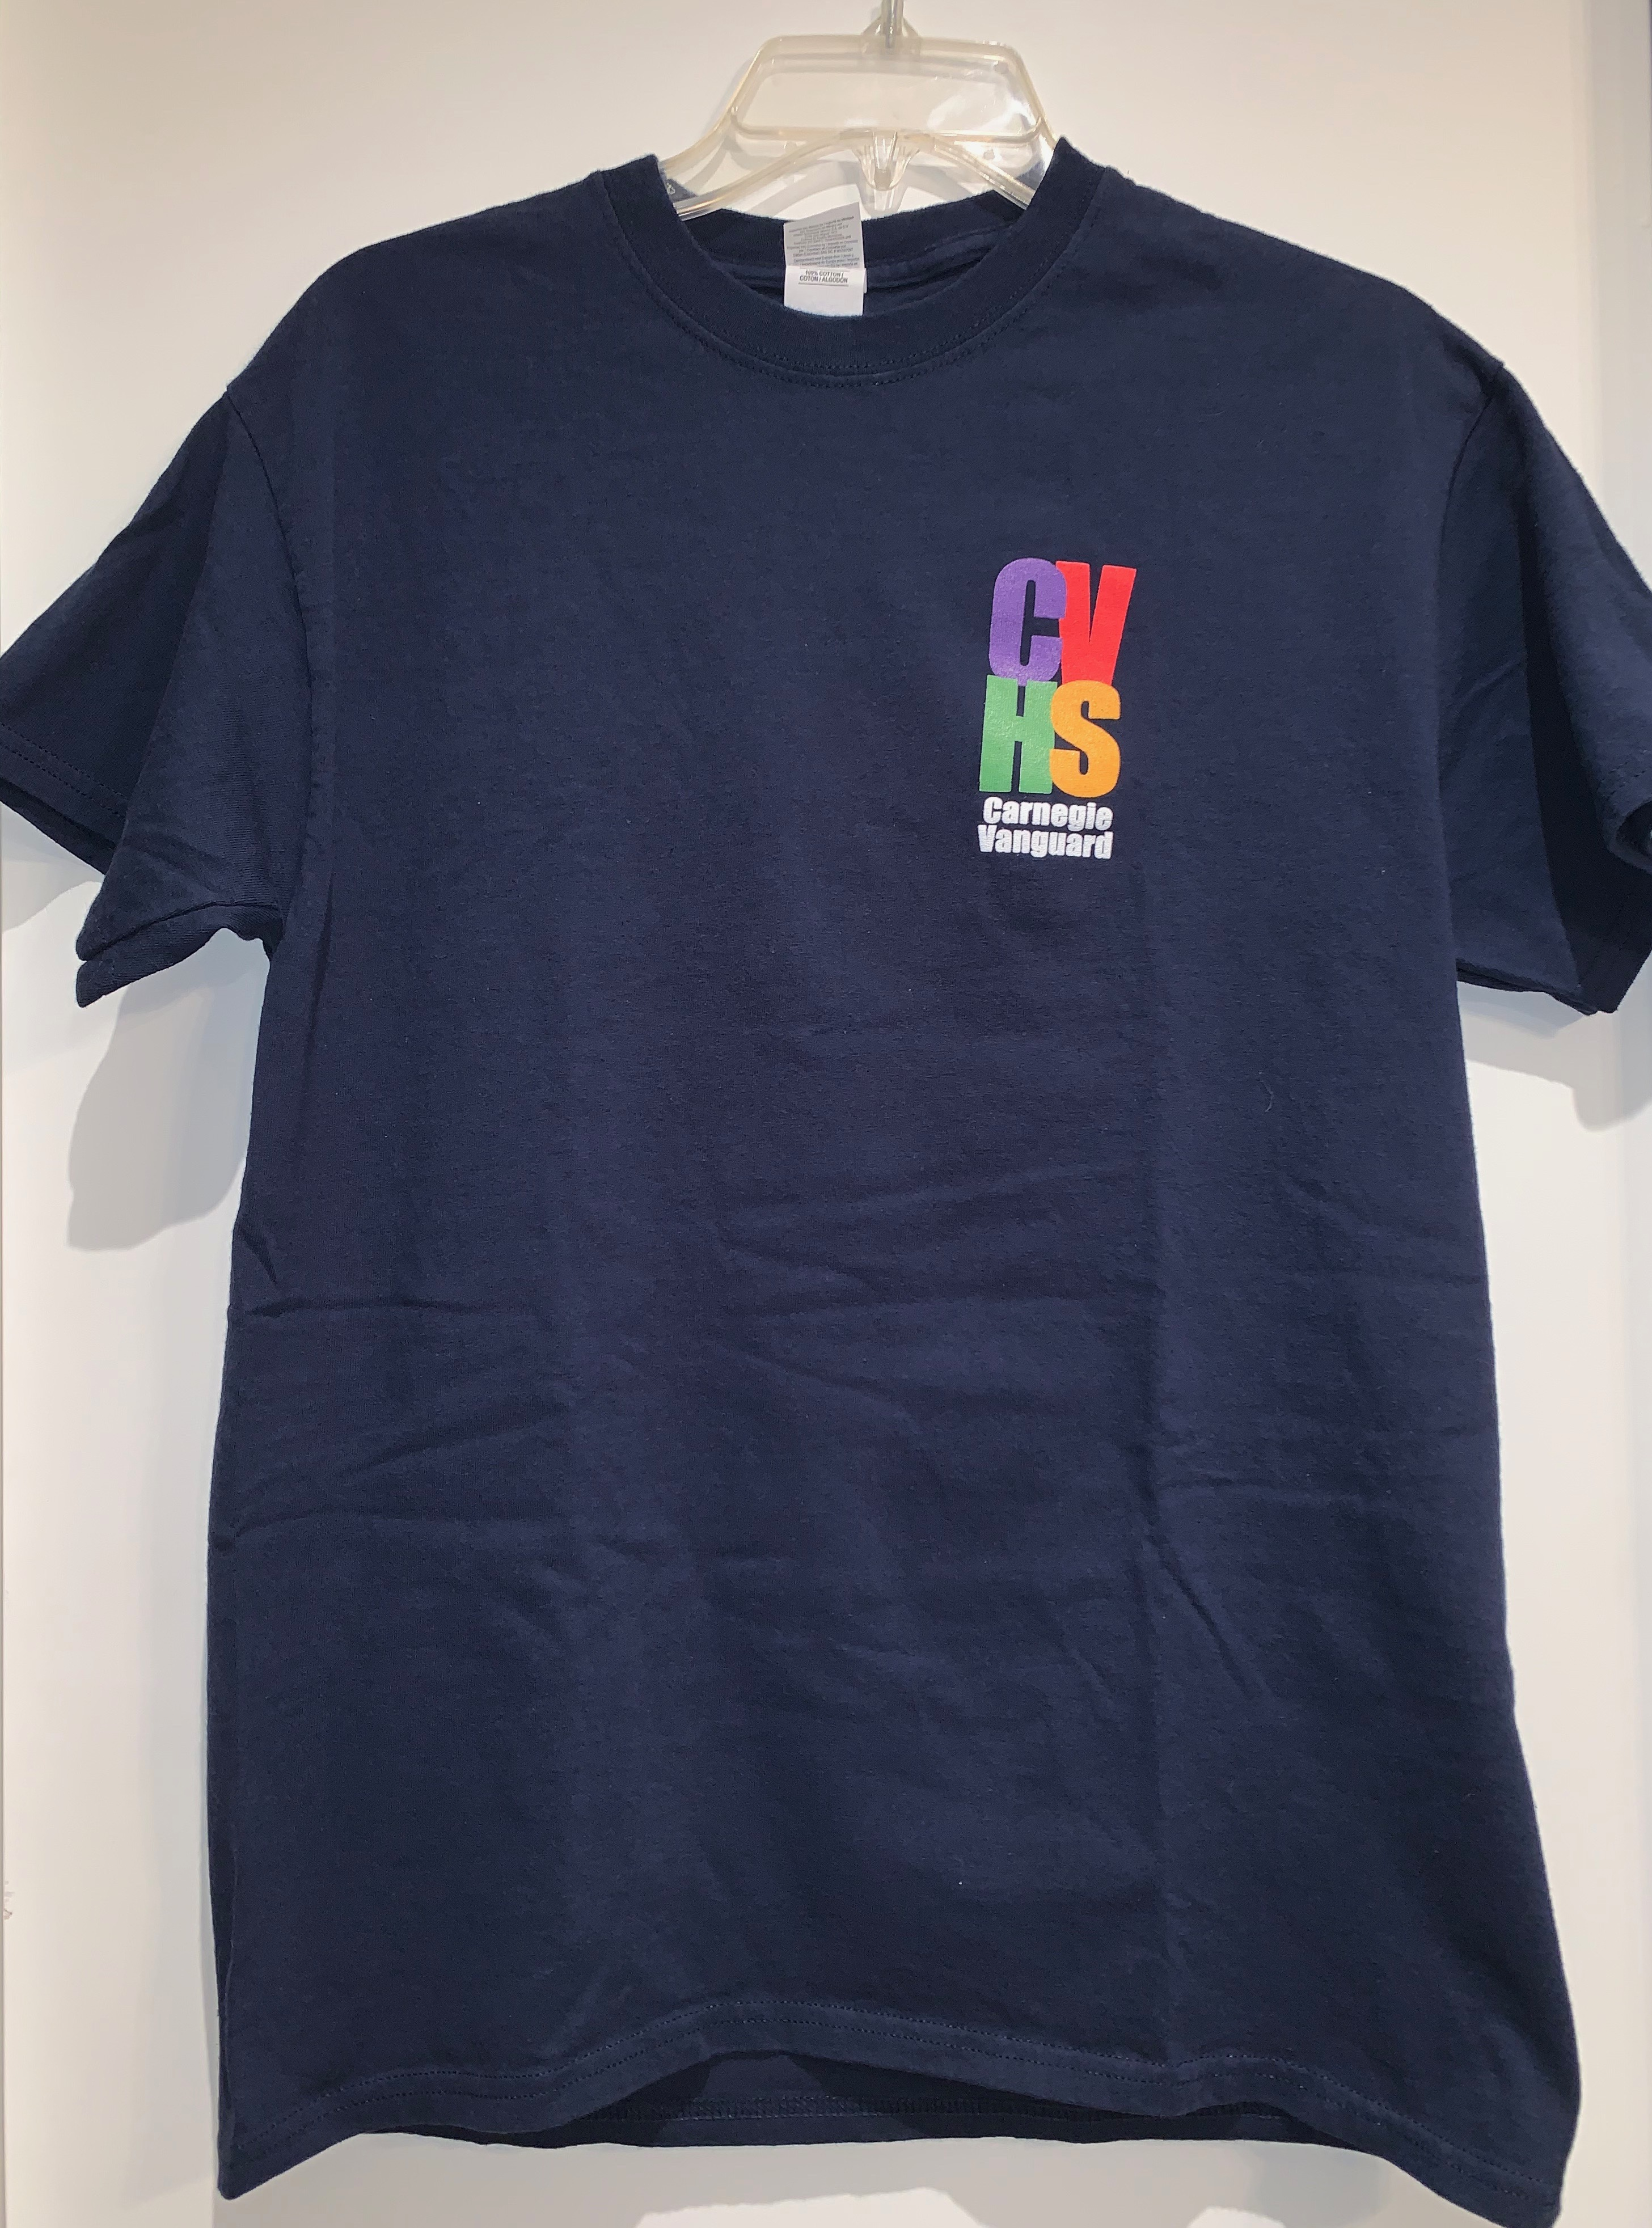 Short Sleeve T-Shirt, 4-color logo, Navy (XL only)